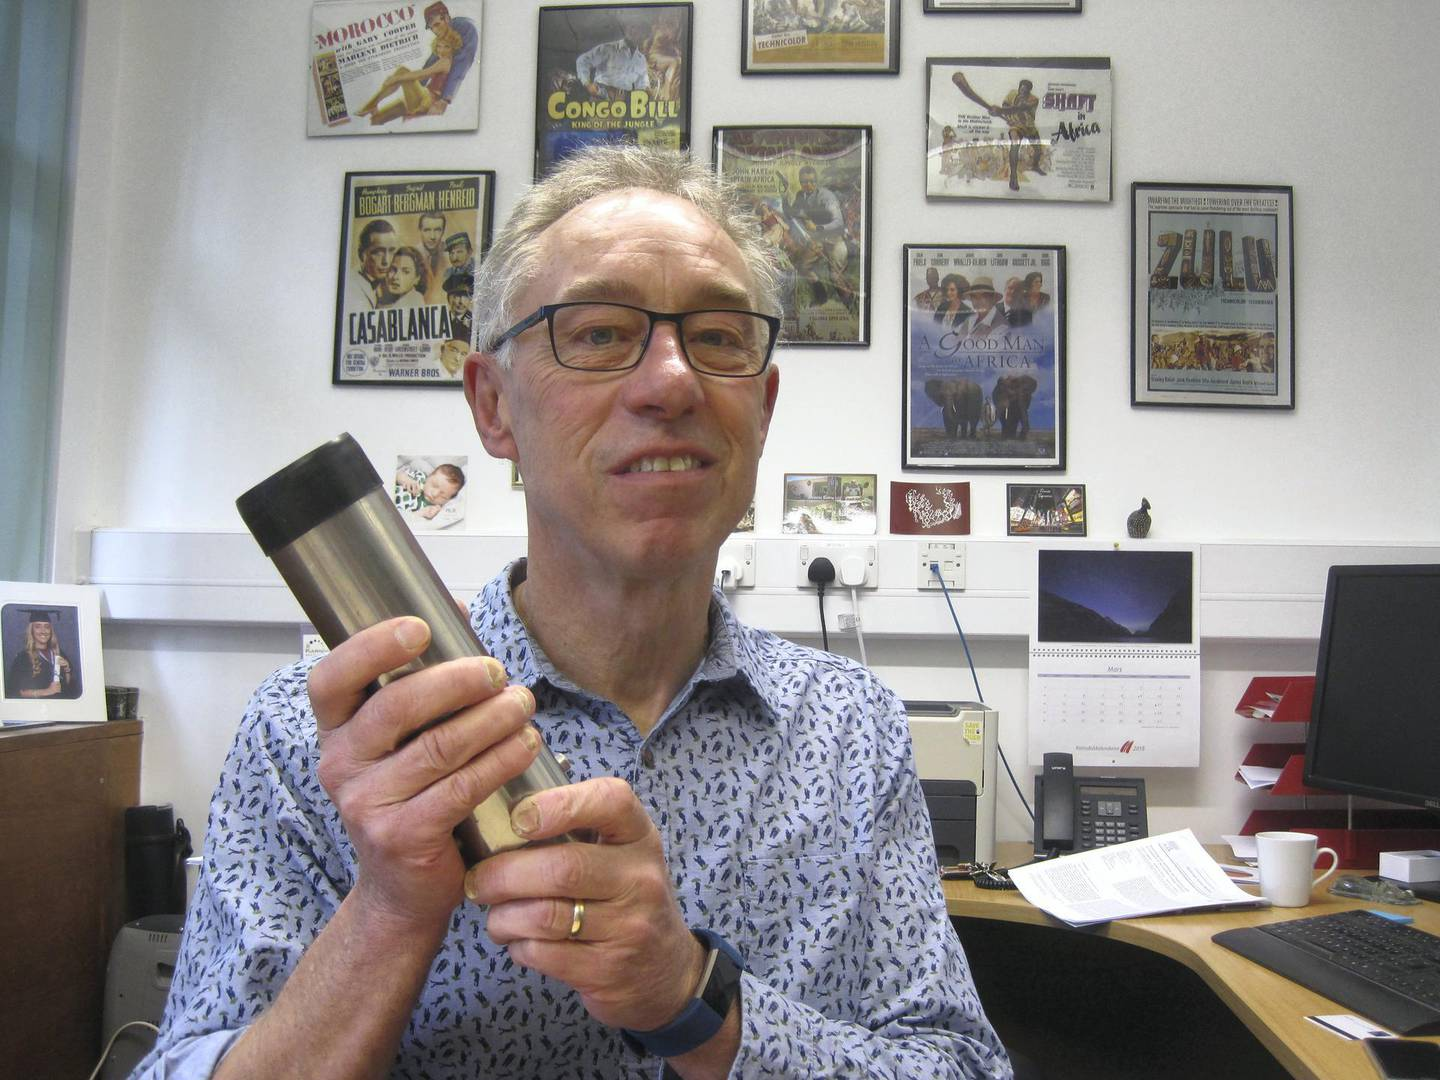 Professor David Thomas in his office at the University of Oxford with one of the containers used to collect sand samples. Courtsey: Daniel Bardsley